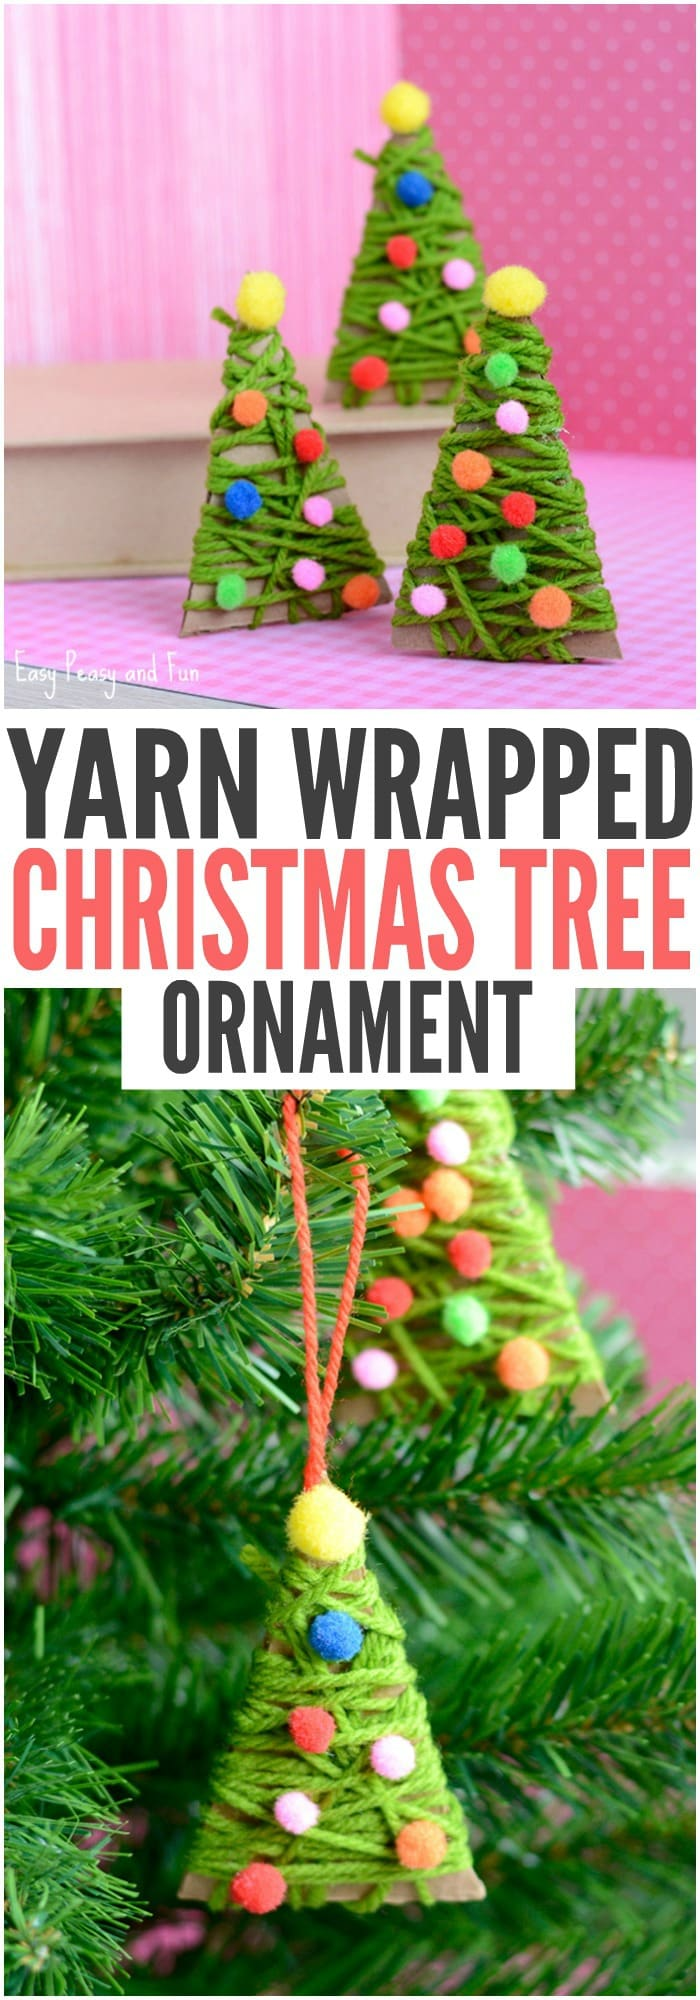 diy yarn wrapped christmas tree ornament christmas ornaments for kids to make